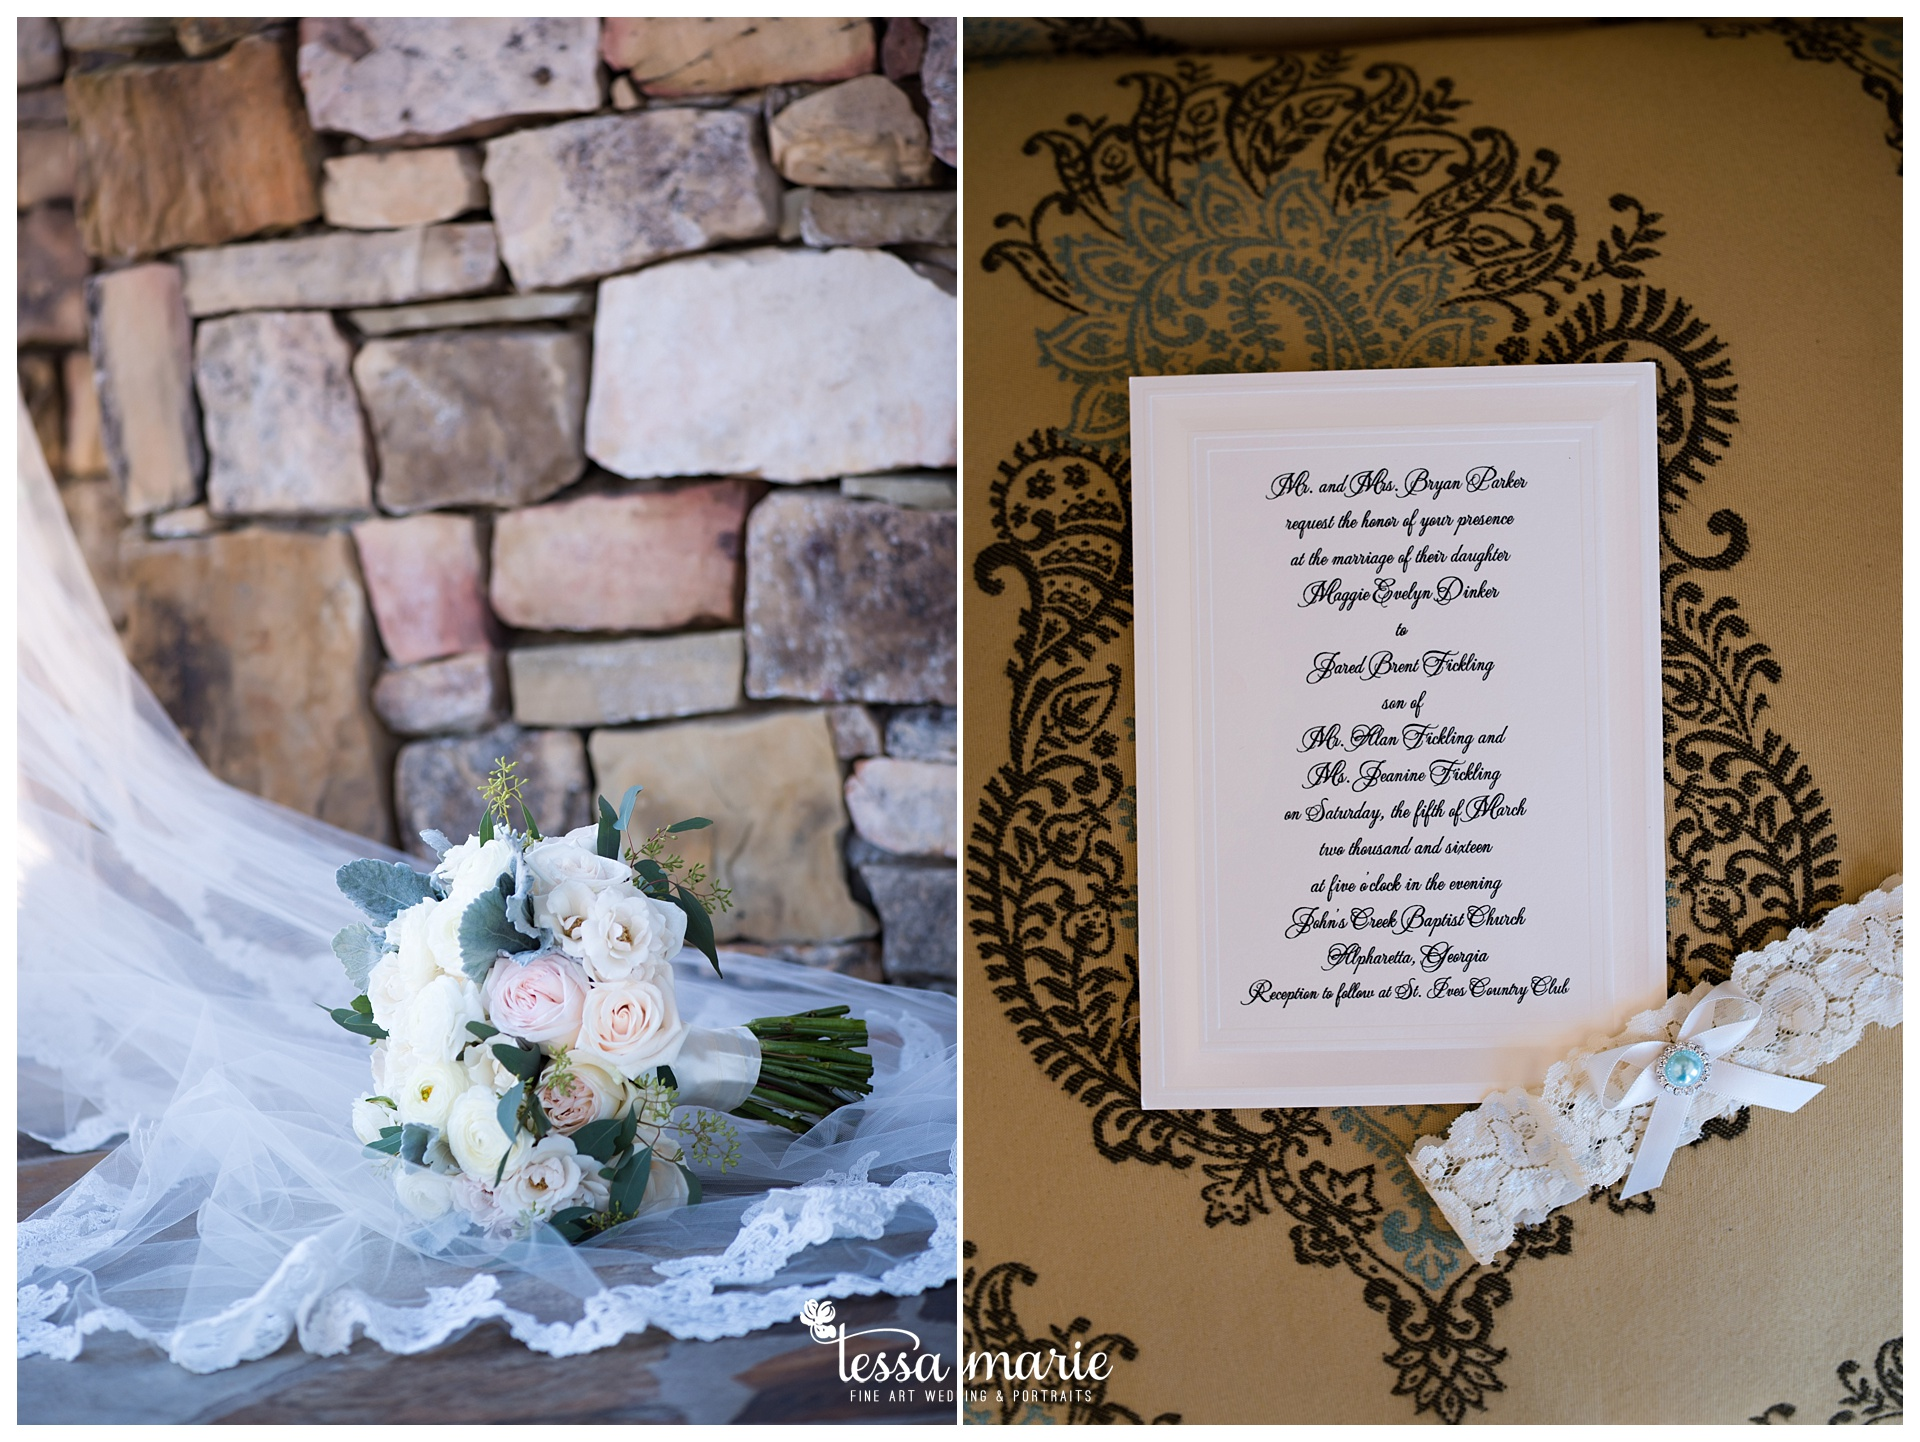 tessa_marie_weddings_legacy_story_focused_wedding_pictures_atlanta_wedding_photographer_0056